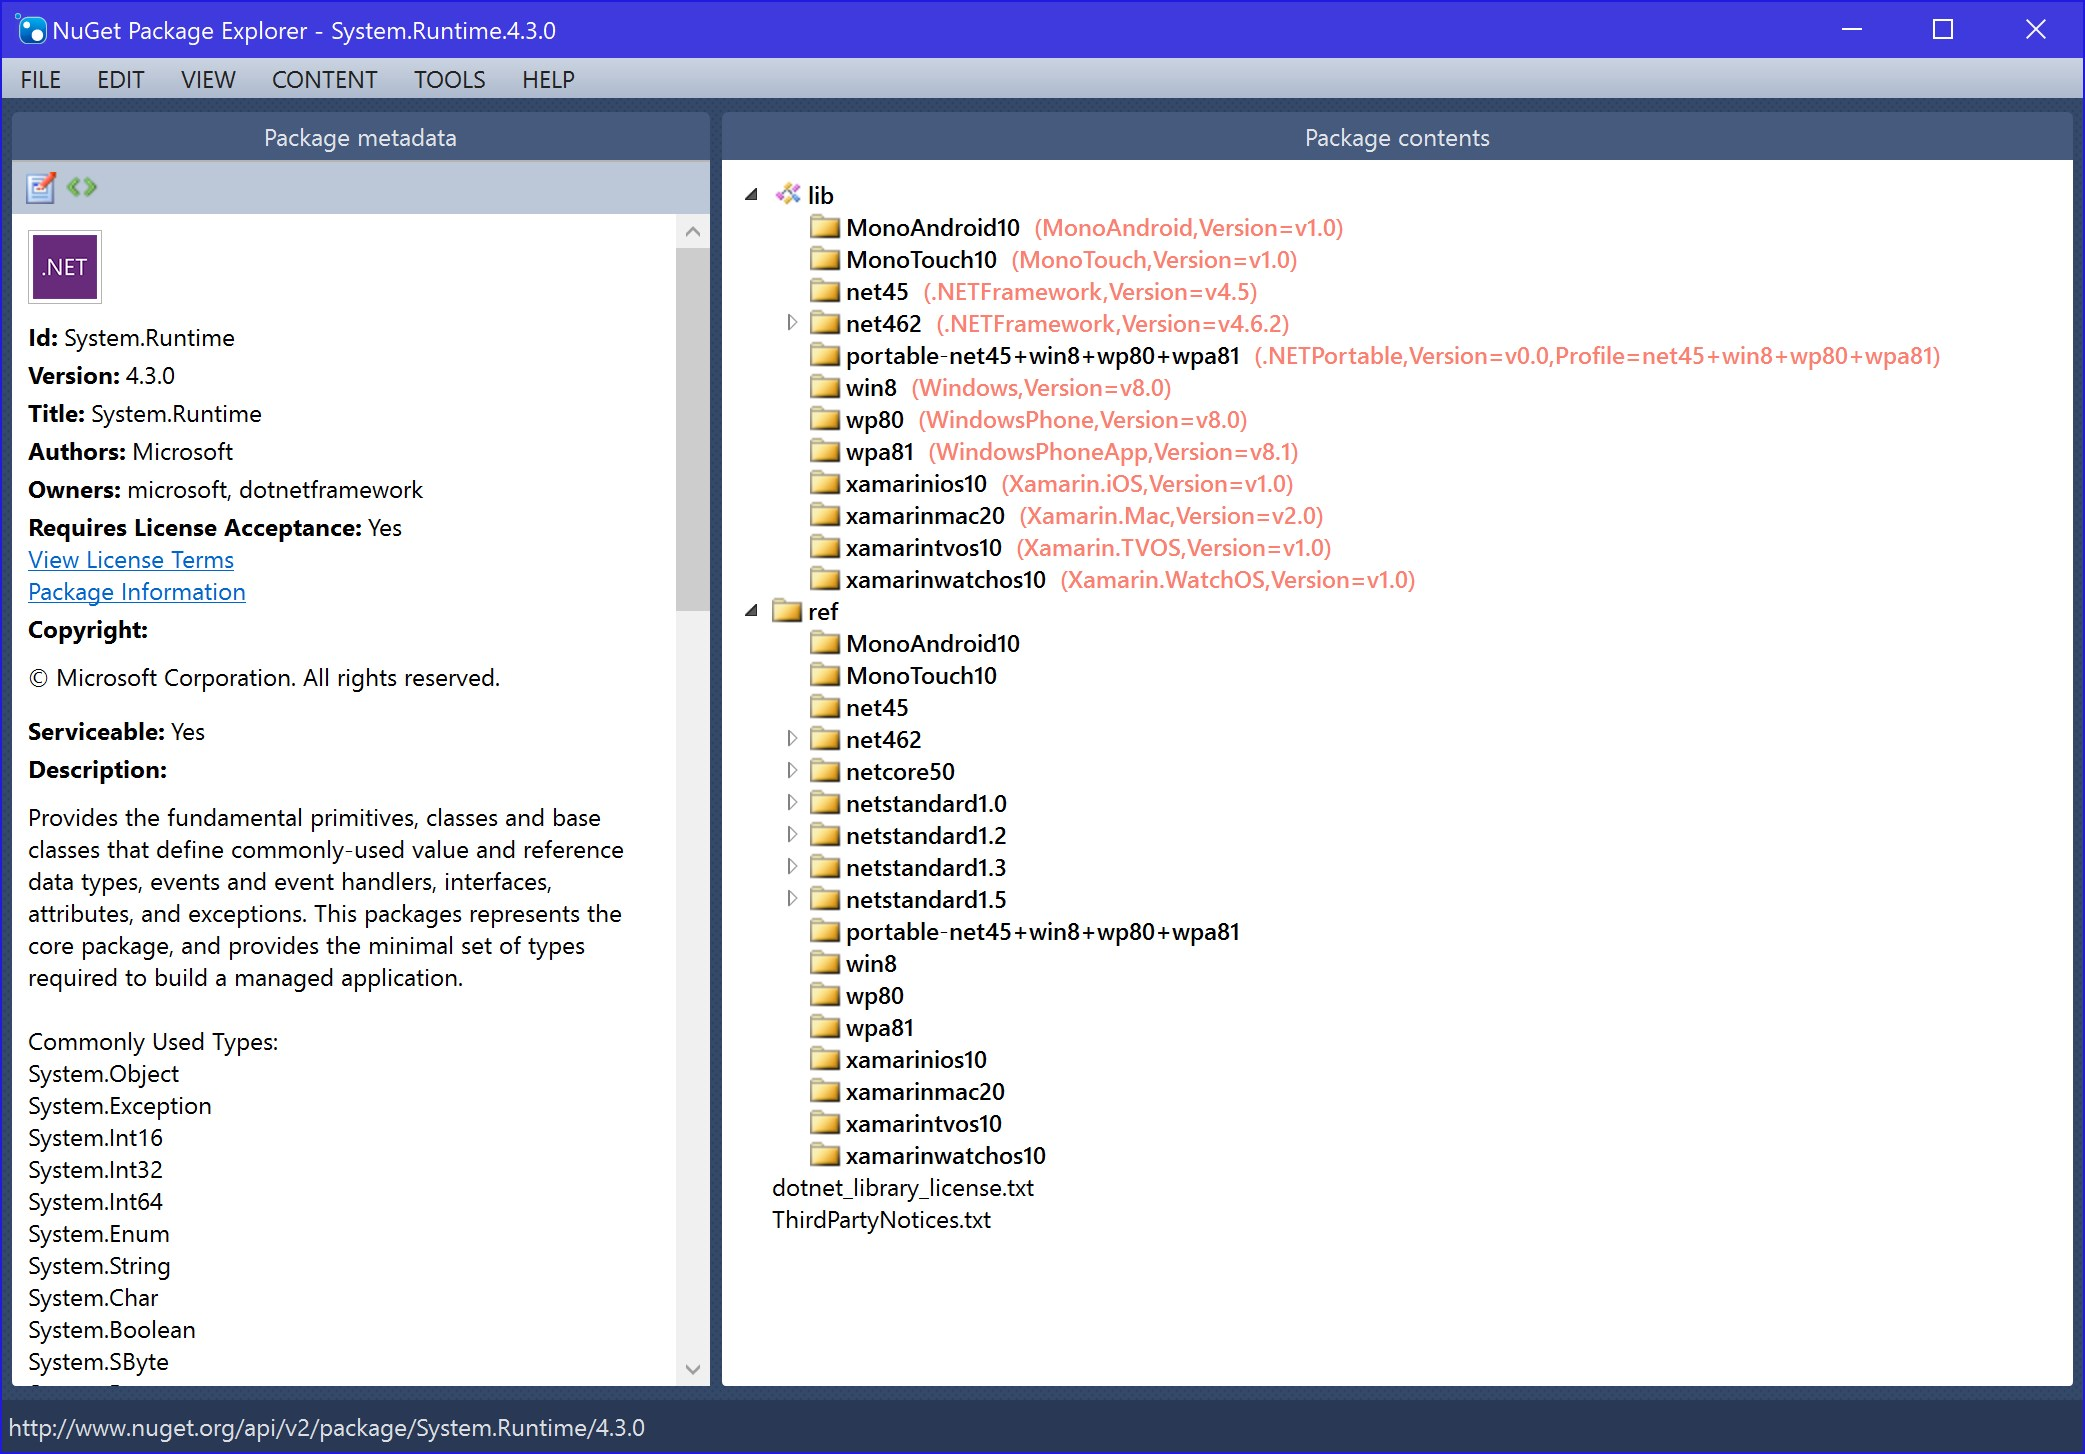 NuGet Package Explorer